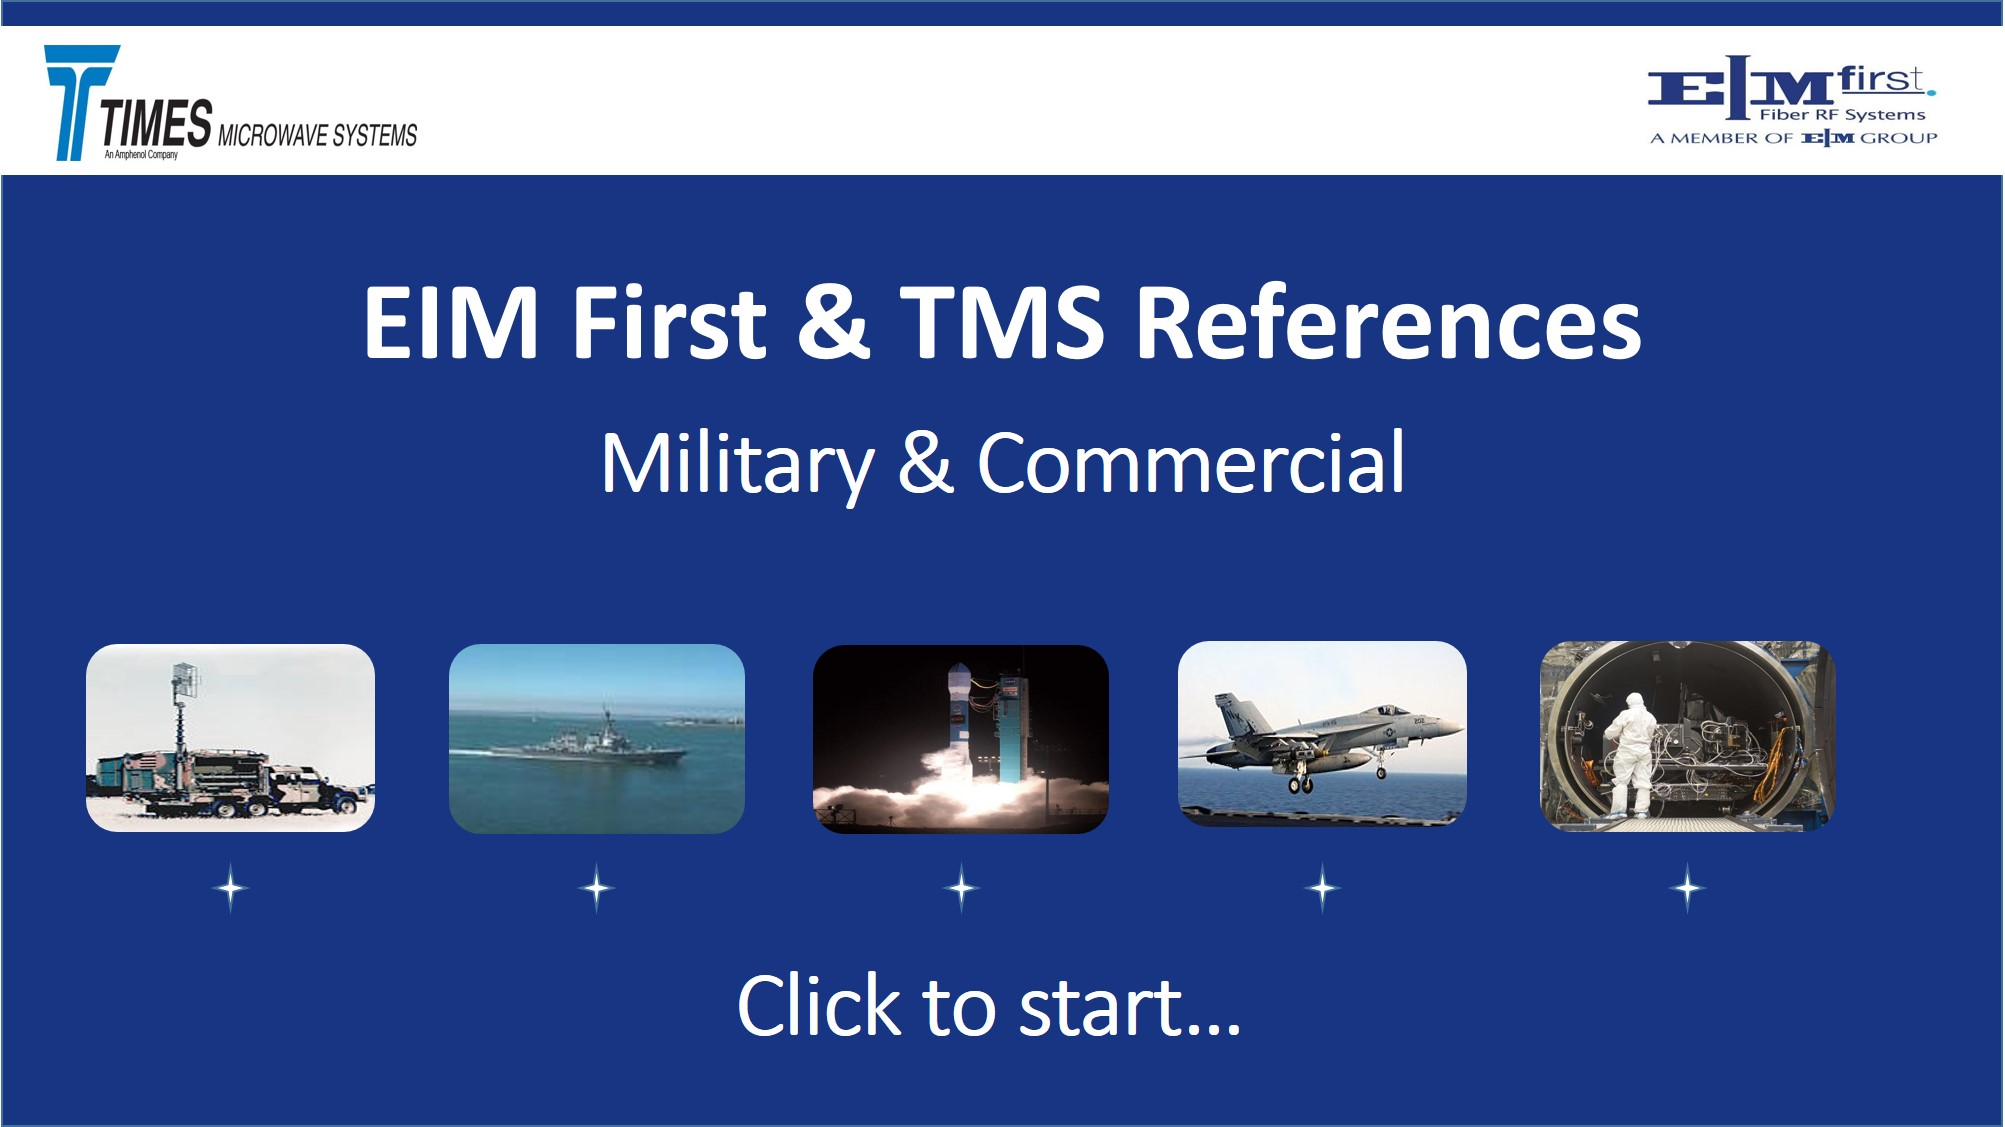 EIM First & TMS References